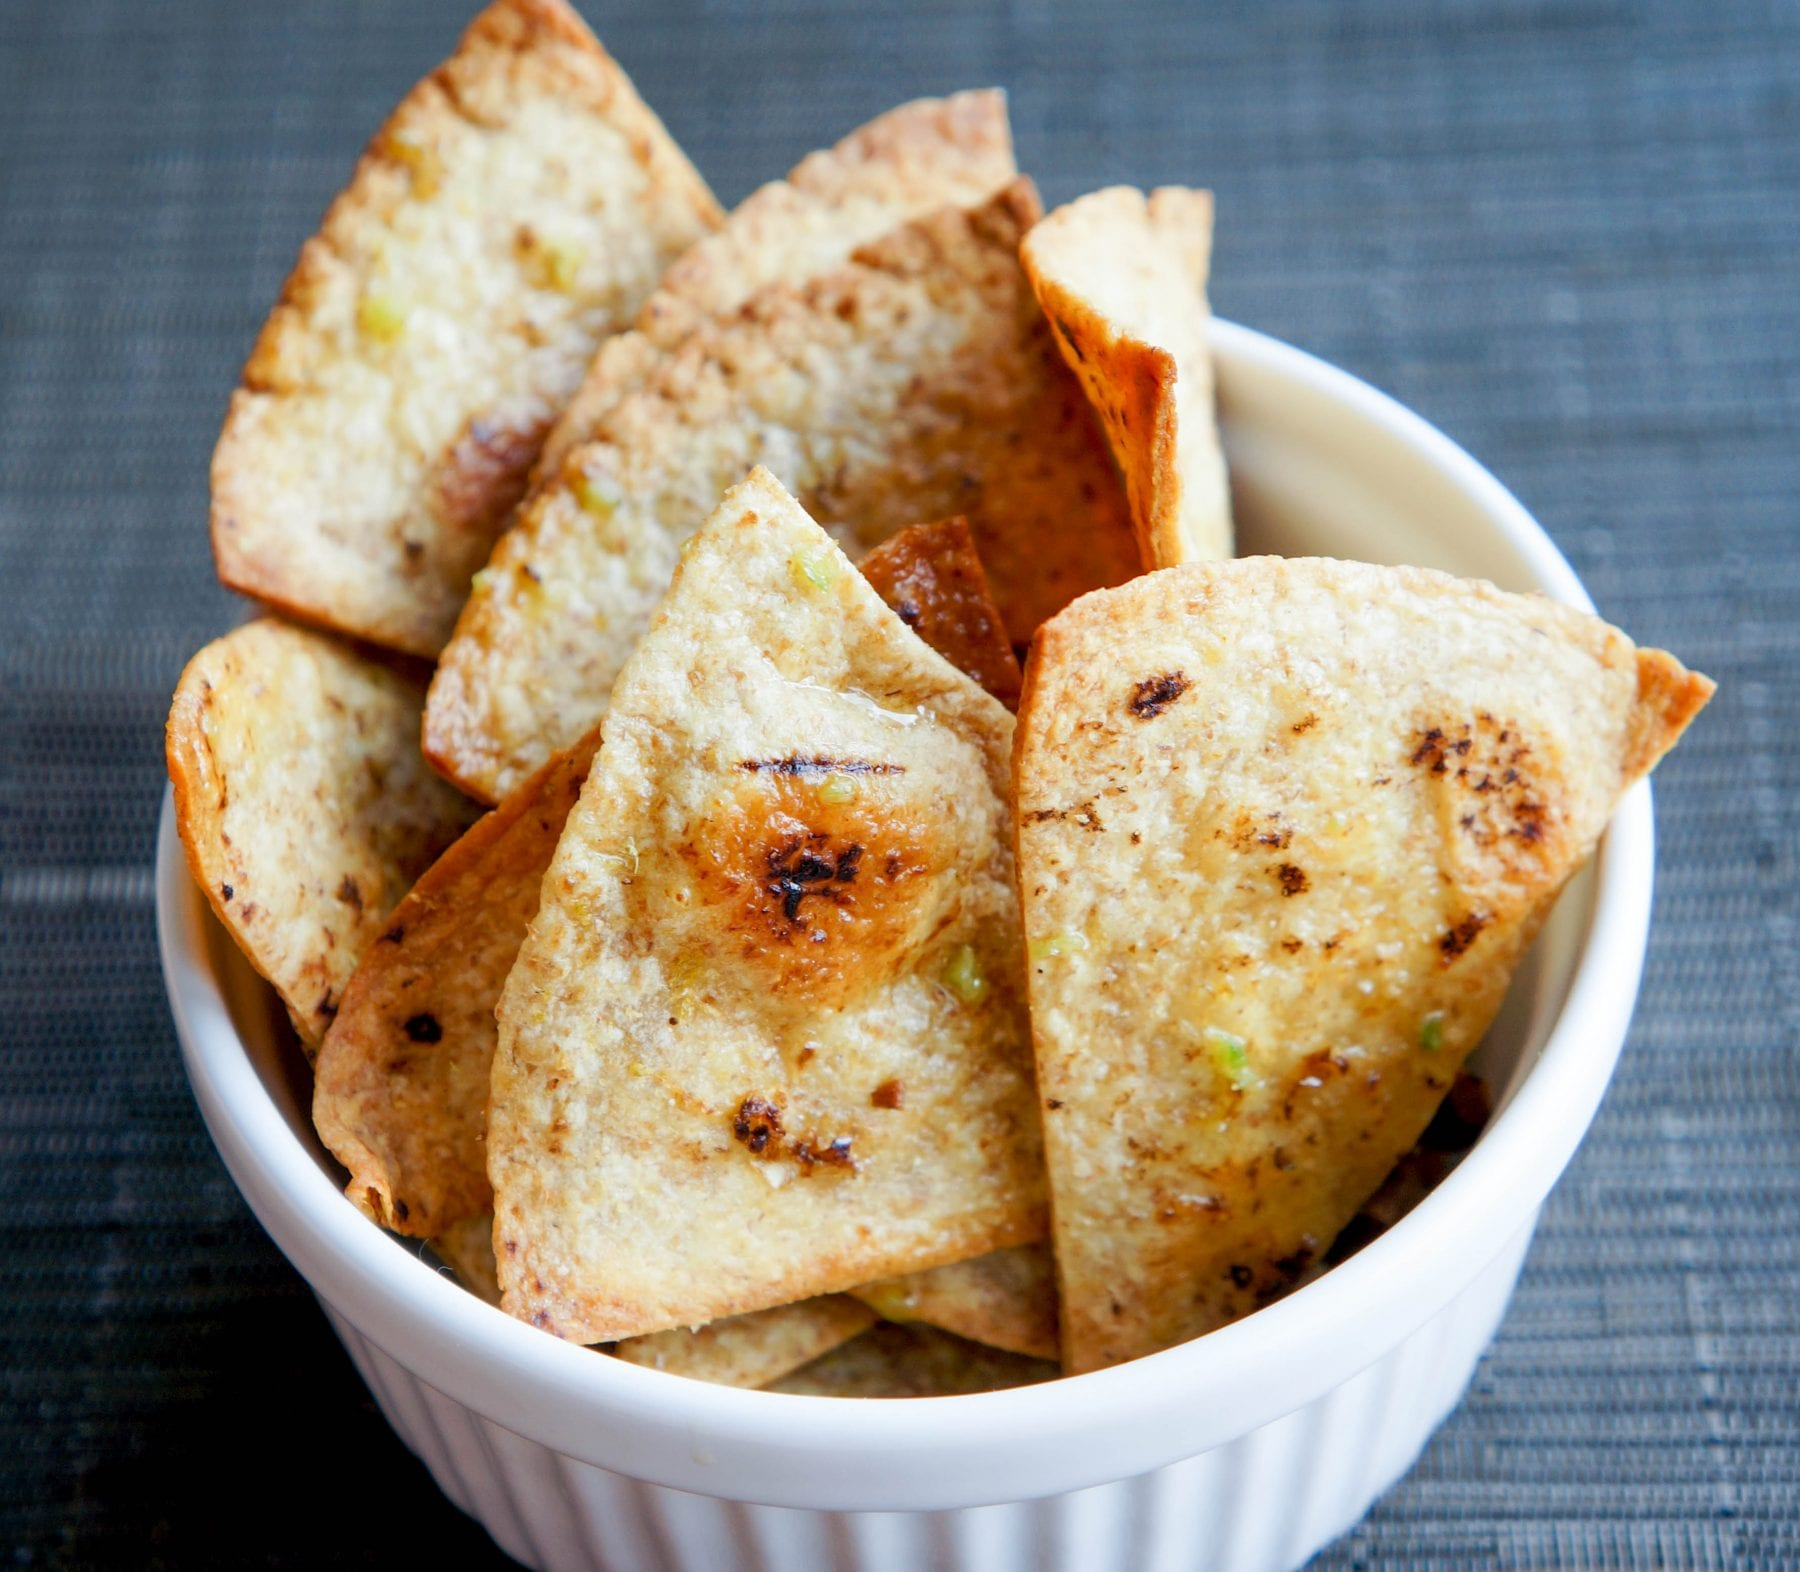 Spicy Olive Oil Tortilla Chips